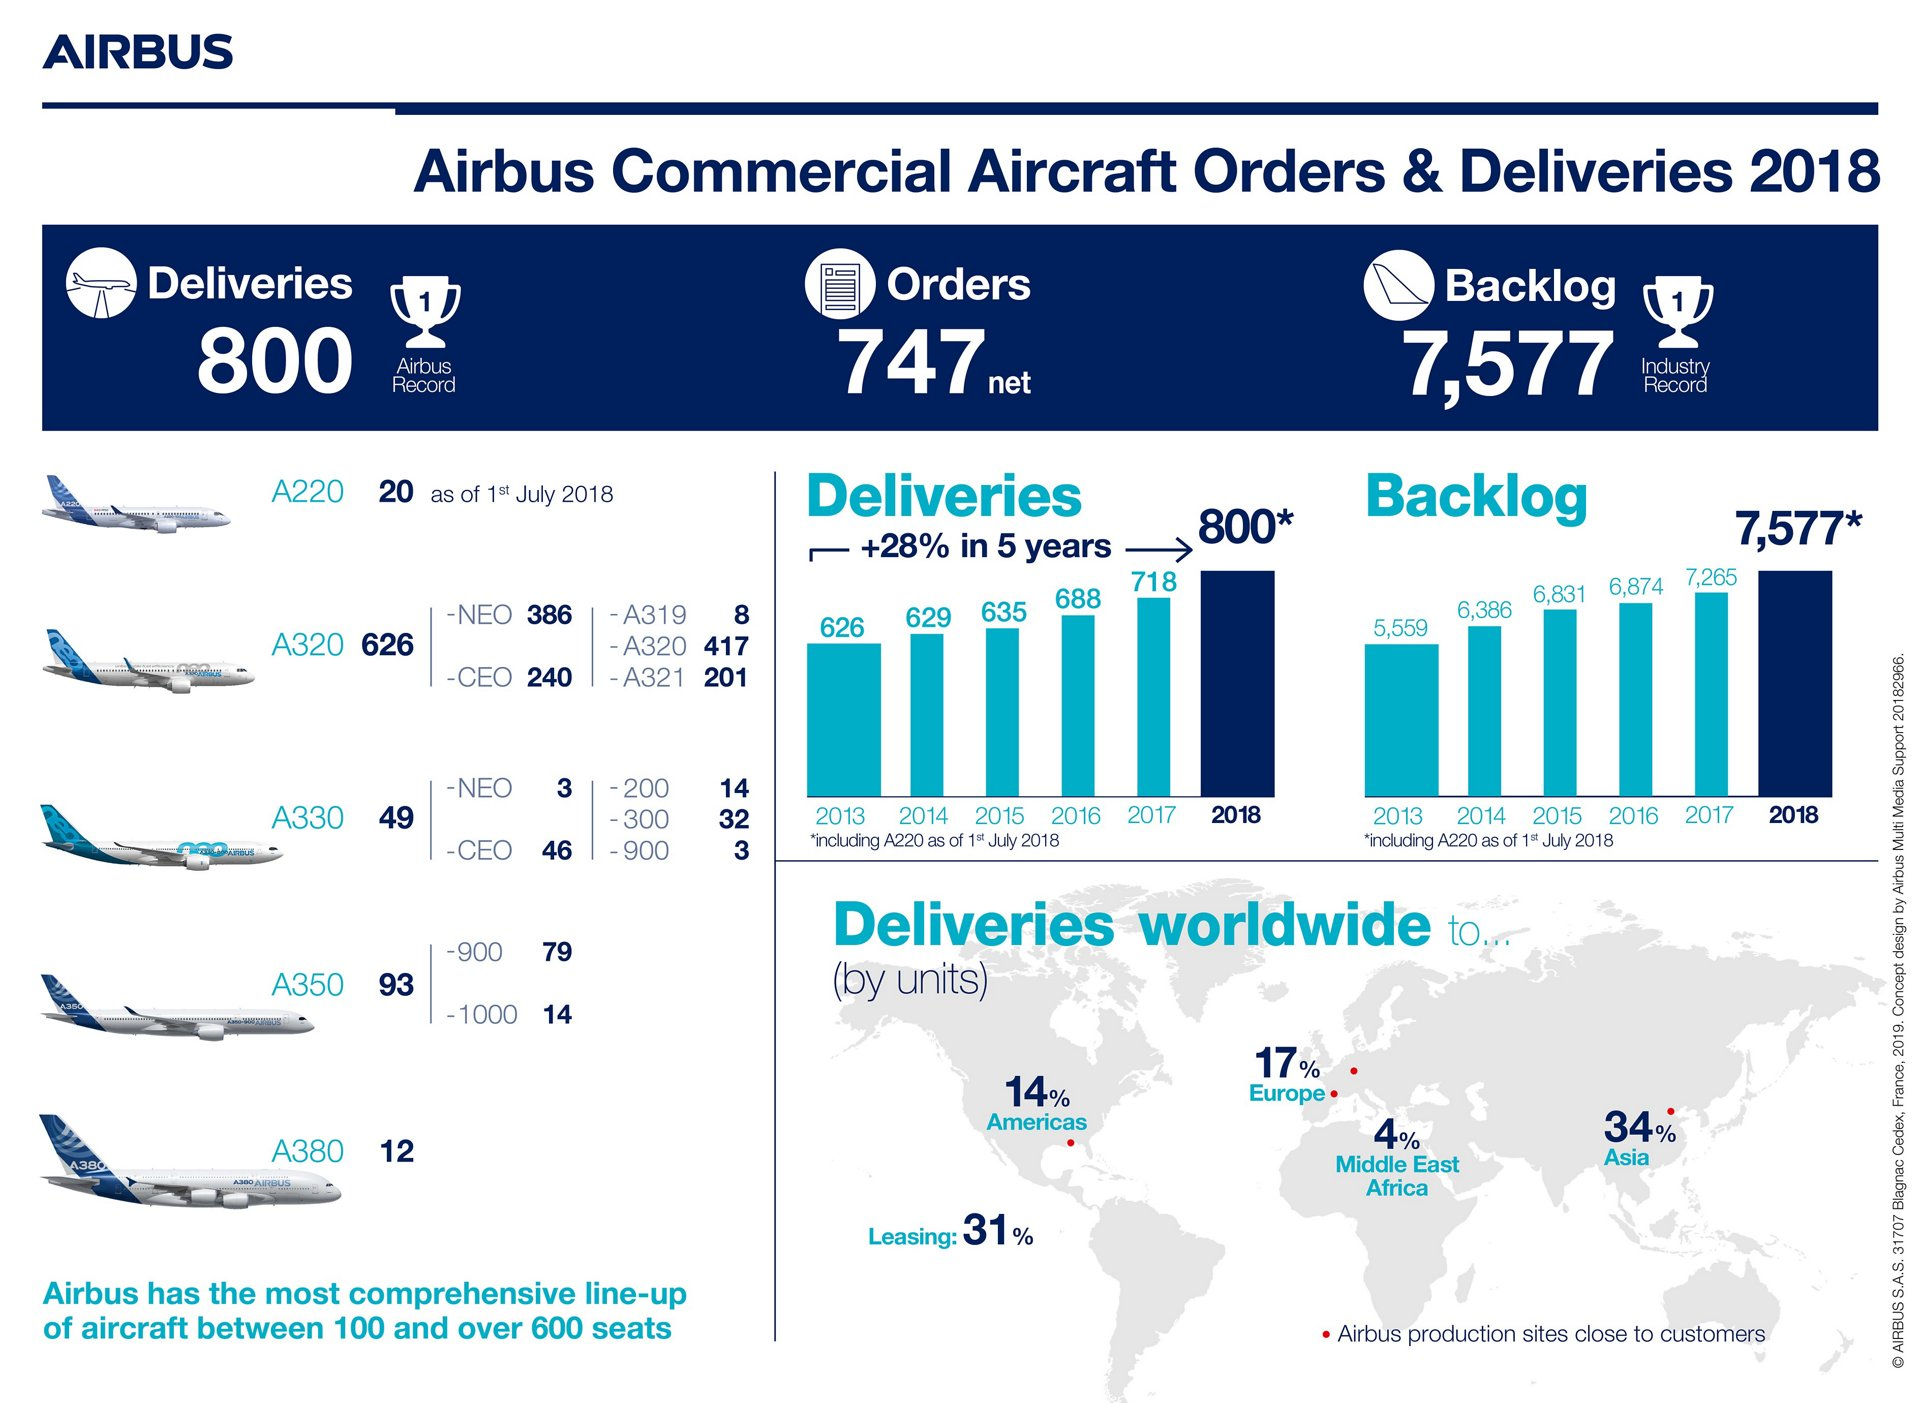 Airbus 2018 deliveries